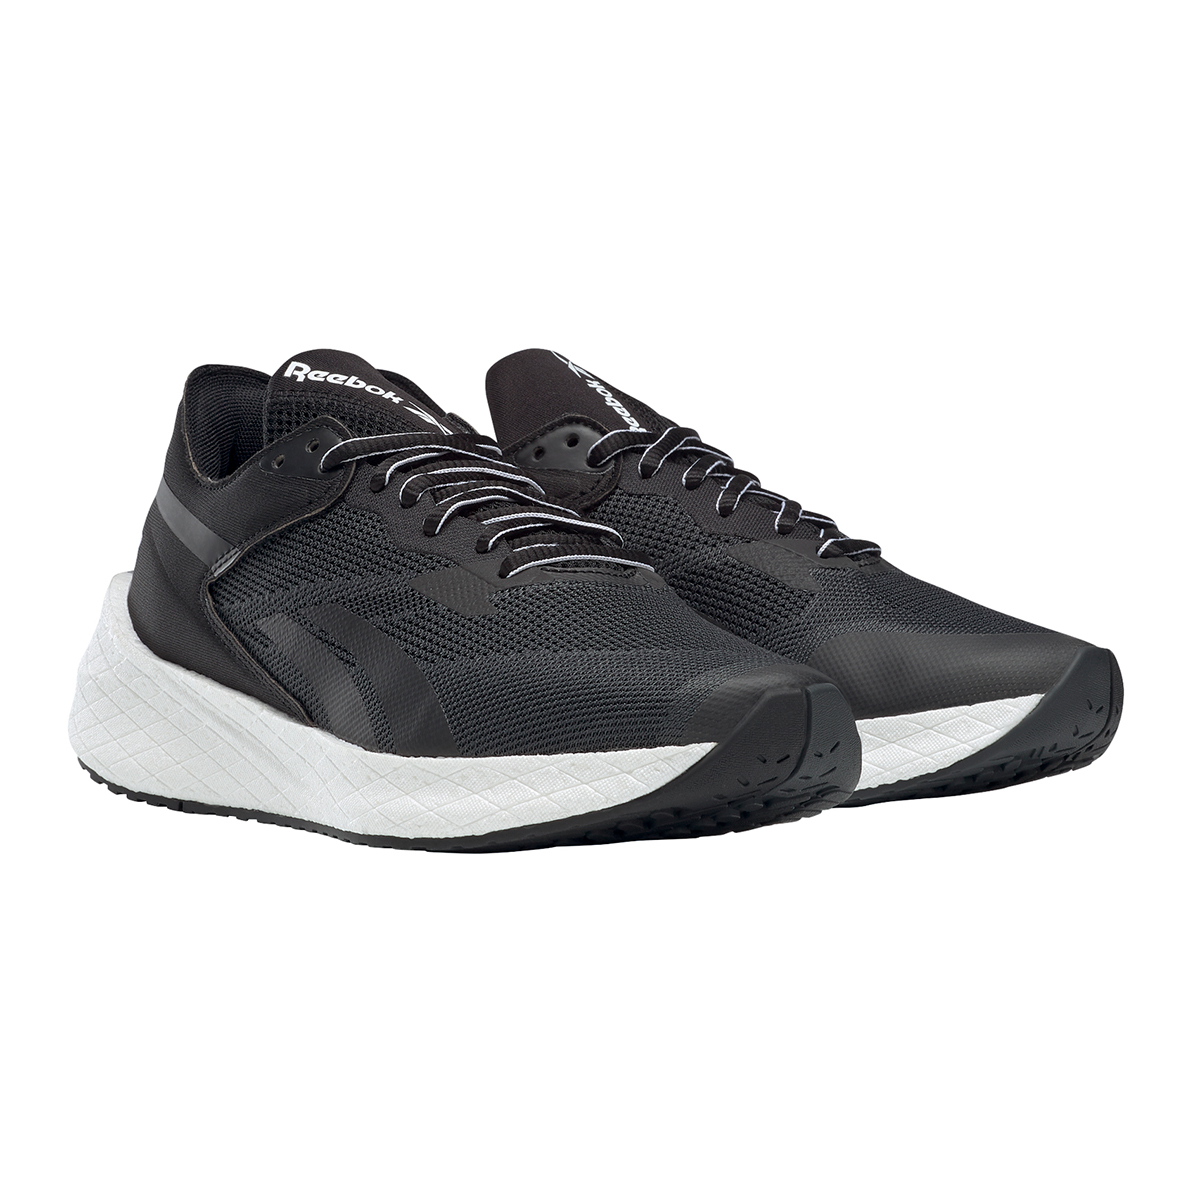 Women's Reebok Floatride Energy Symmetros Running Shoe - Color: Black/Cold Grey/Cool Shadow - Size: 6 - Width: Regular, Black/Cold Grey/Cool Shadow, large, image 3